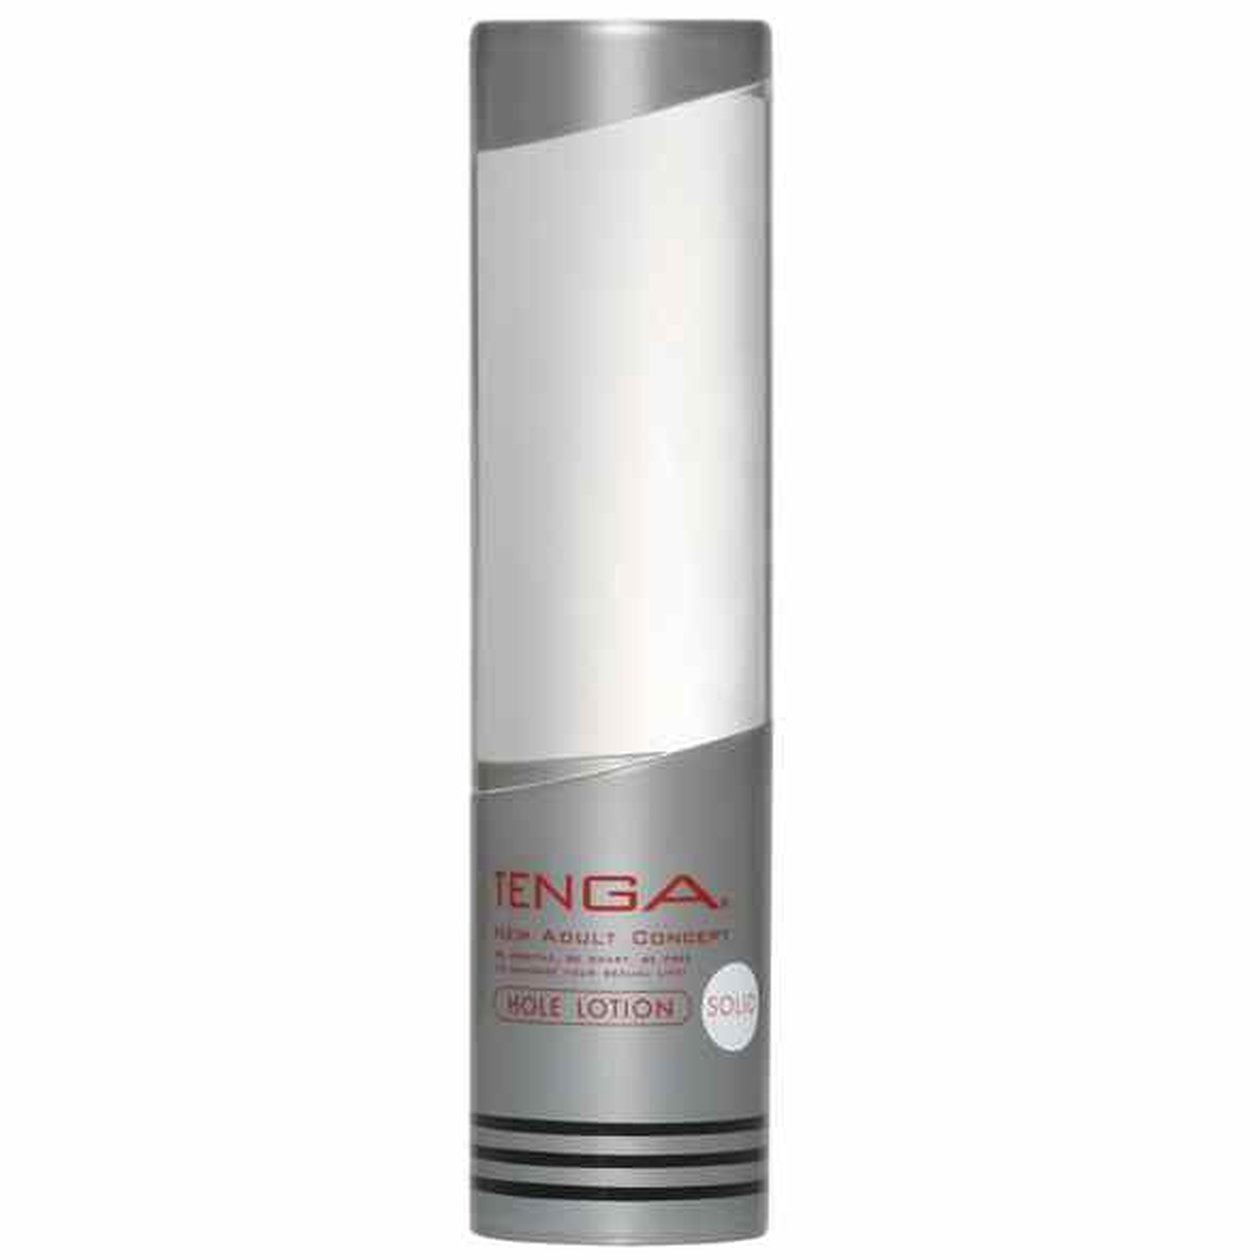 Tenga - Hole Lotion Lubricant Solid